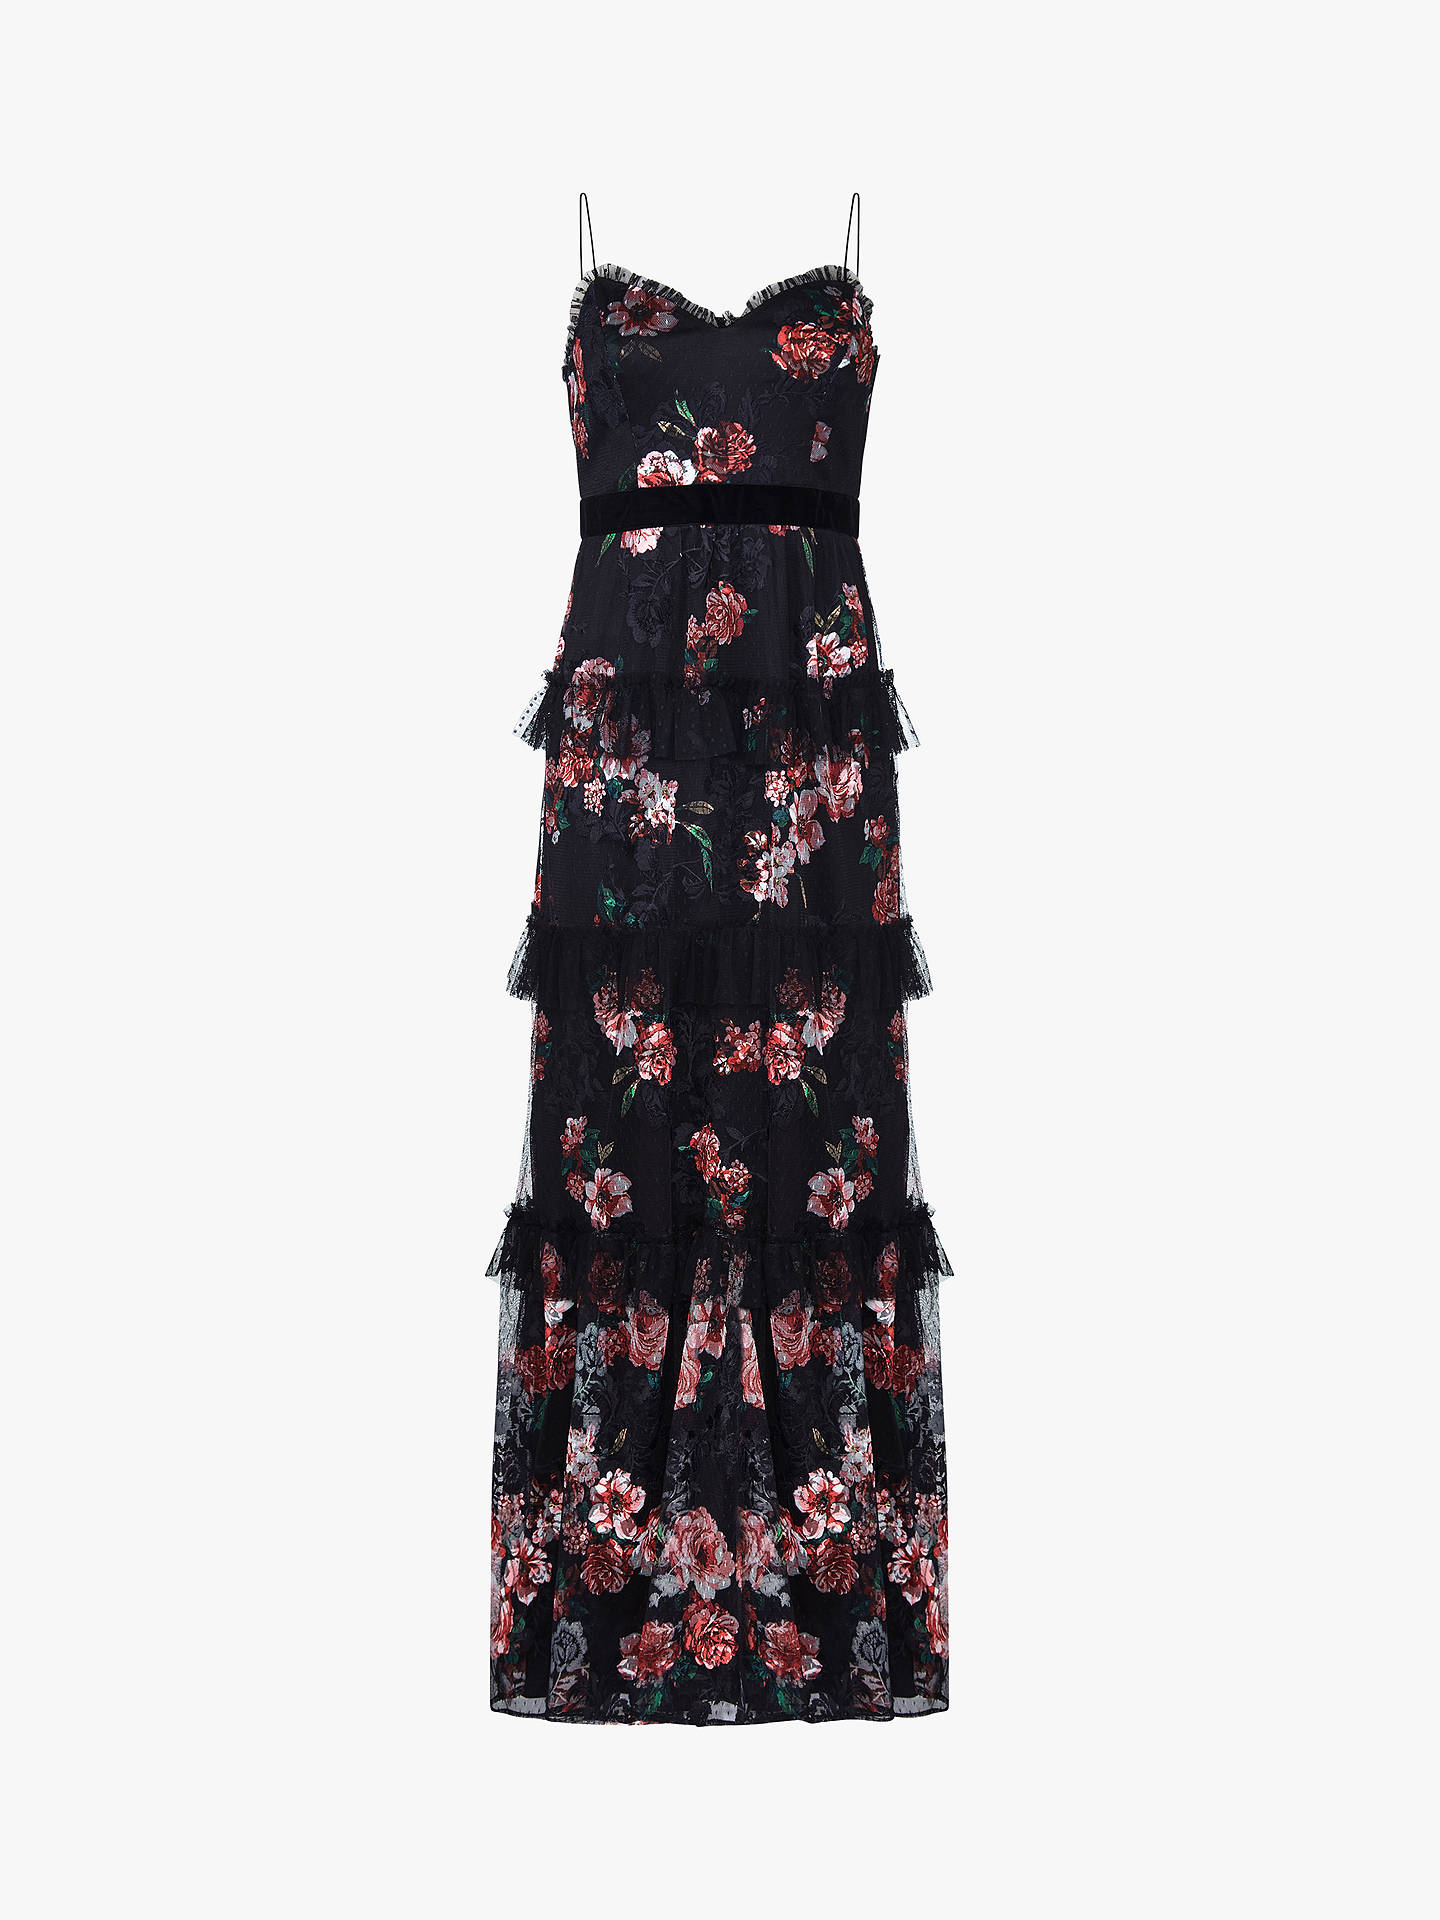 Buy Adrianna Papell Tiered Floral Print Tulle Dress, Red Multi, 6 Online at johnlewis.com